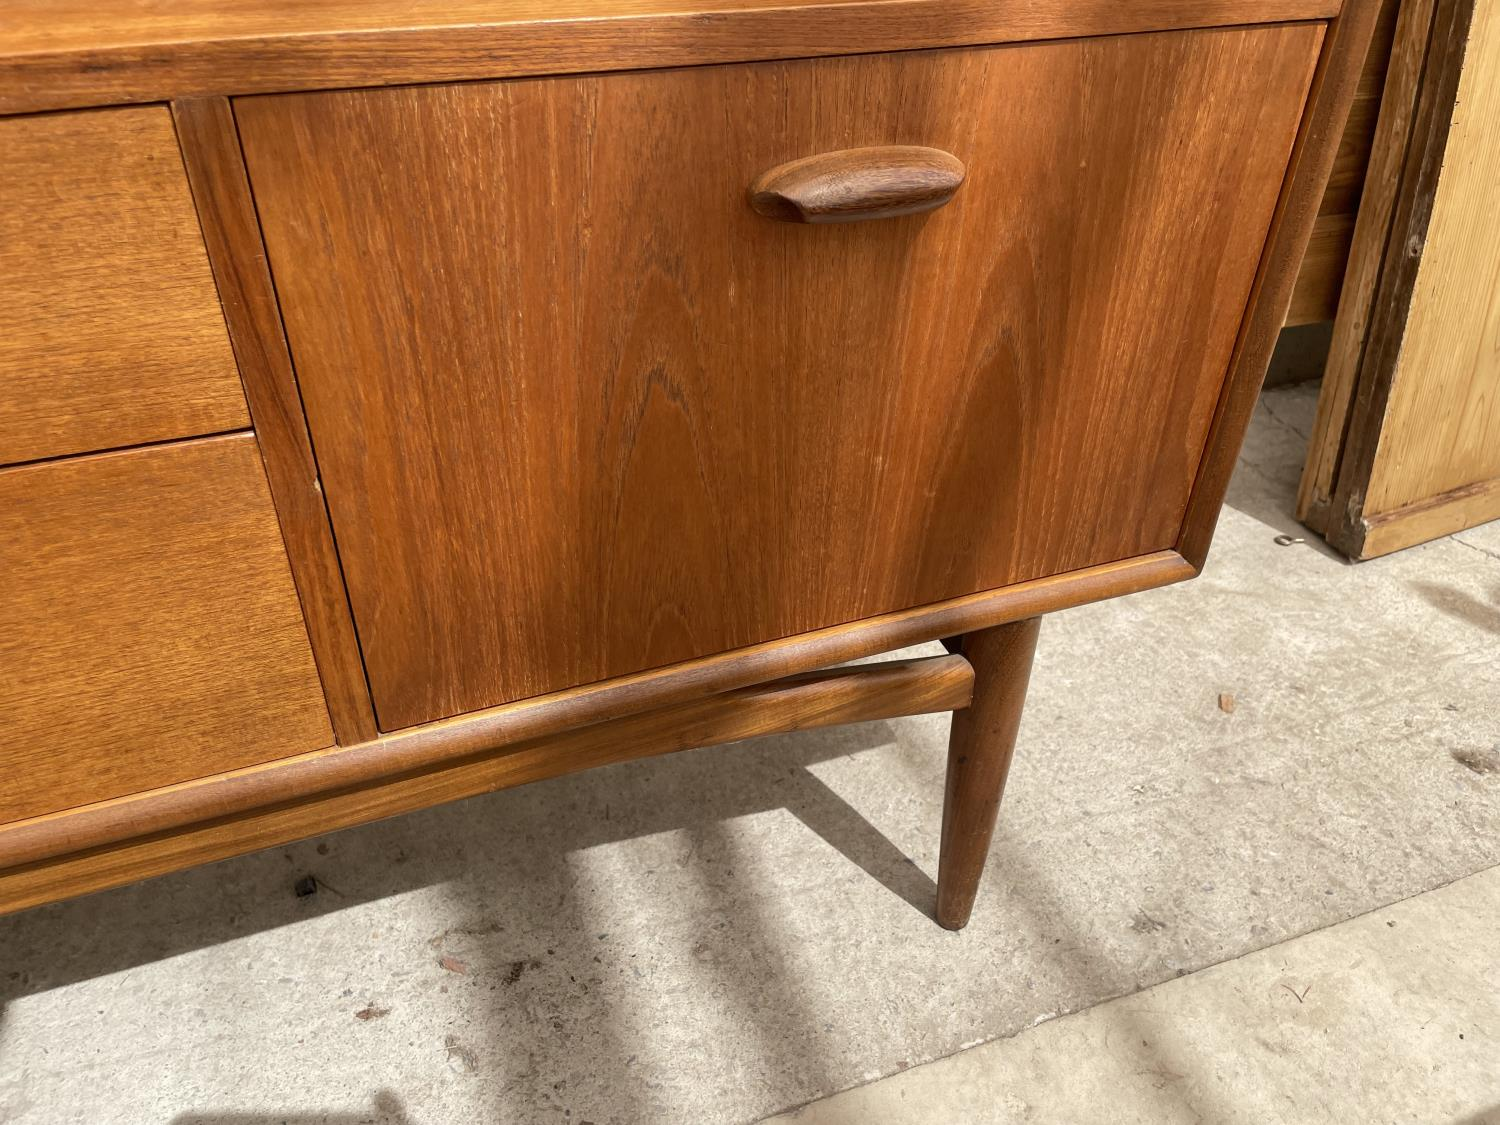 A G PLAN RETRO TEAK SIDEBOARD WITH UPPER CABINET - Image 6 of 8